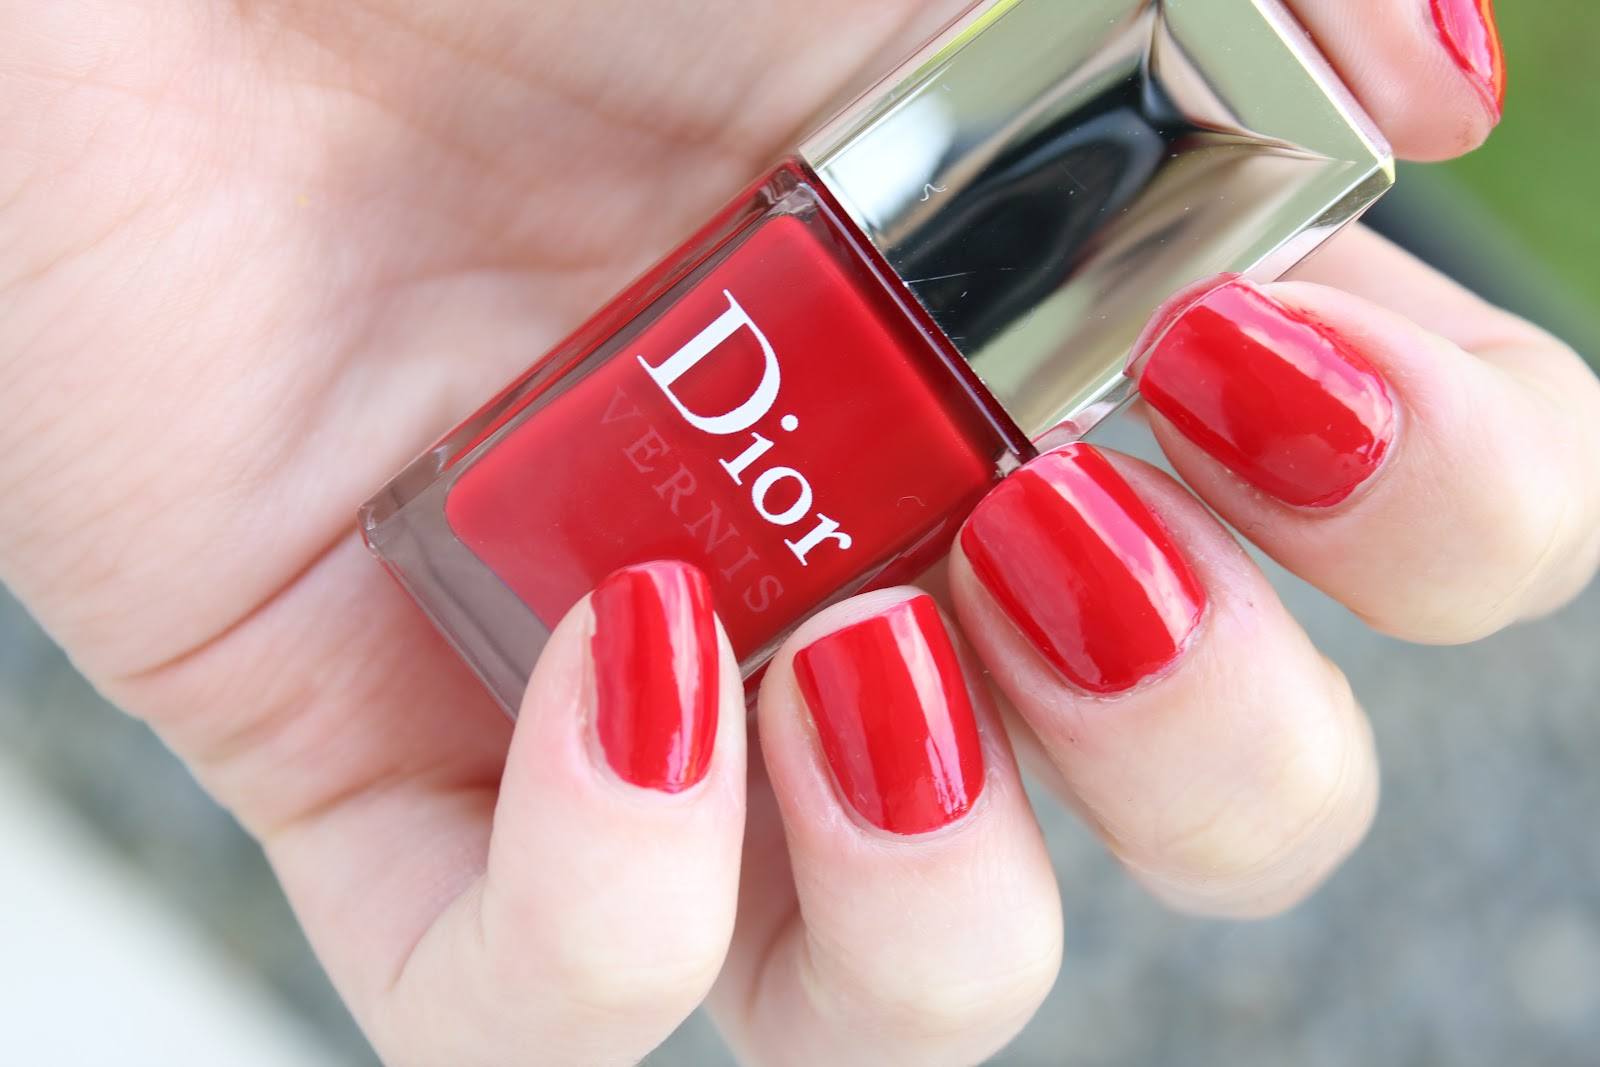 Dior Vernis In Rouge Altesse Or Red Royalty Review And Swatches